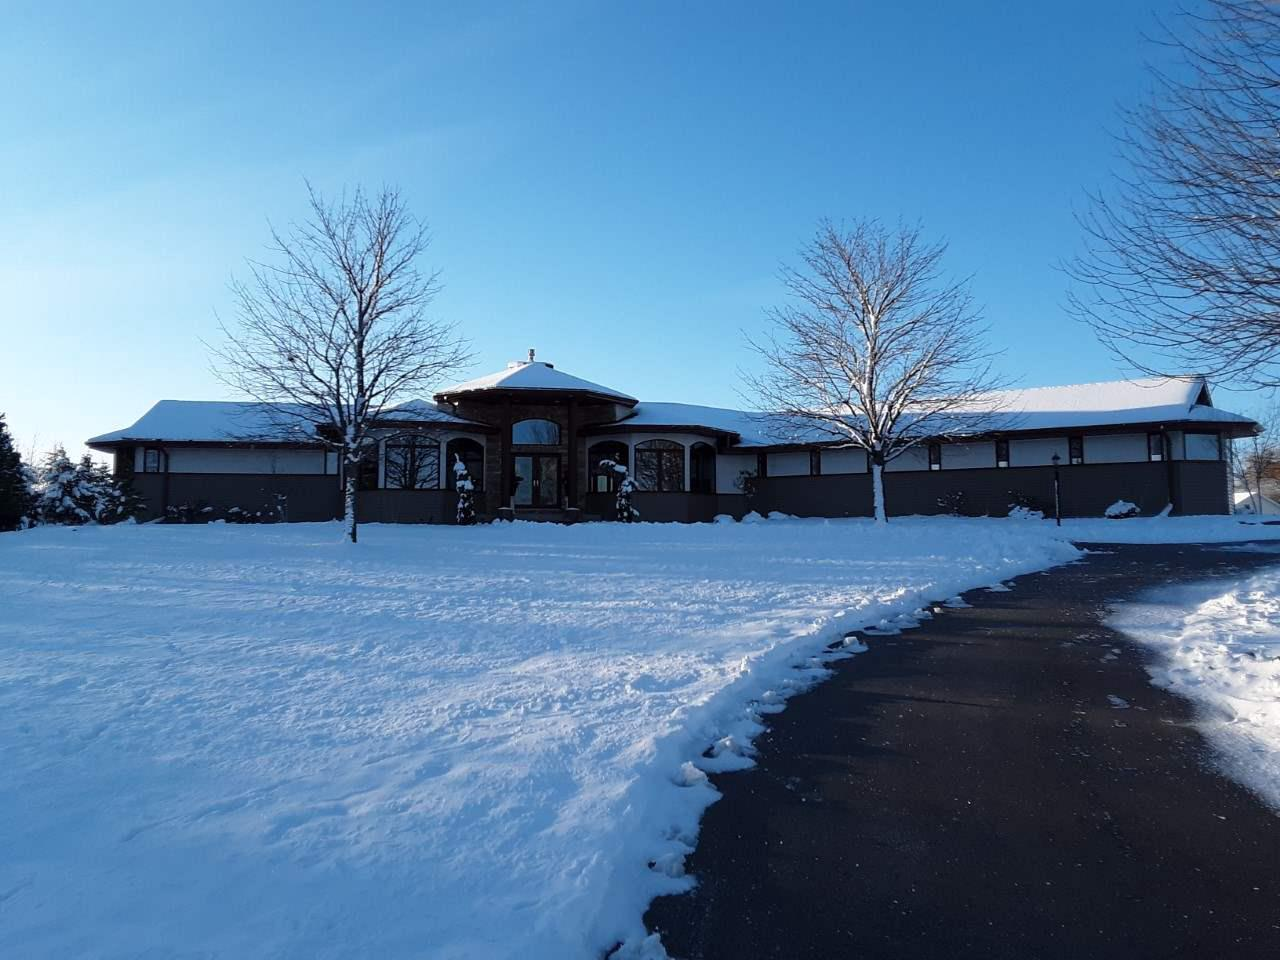 """Winter wonder land. Set back on almost 10 acres you will find this magnificent 6000 sqft walkout ranch. High ceilings, angled rooms, pillars, water feature & open concept give this beauty a unique flair. Large windows offer scenic views. 5 spacious BRs w/walk in closets, 4.5 baths & a expansive family room in LL perfect for entertaining. """"Other room"""" - mother in law suite. Enjoy hot tub in solarium or relax in outdoor living space that boasts stamped patio, pergola, professional landscaping & separate seating/fire area. 2 ponds,4 car garage w/circle driveway. $12,500 kitchen allowance"""